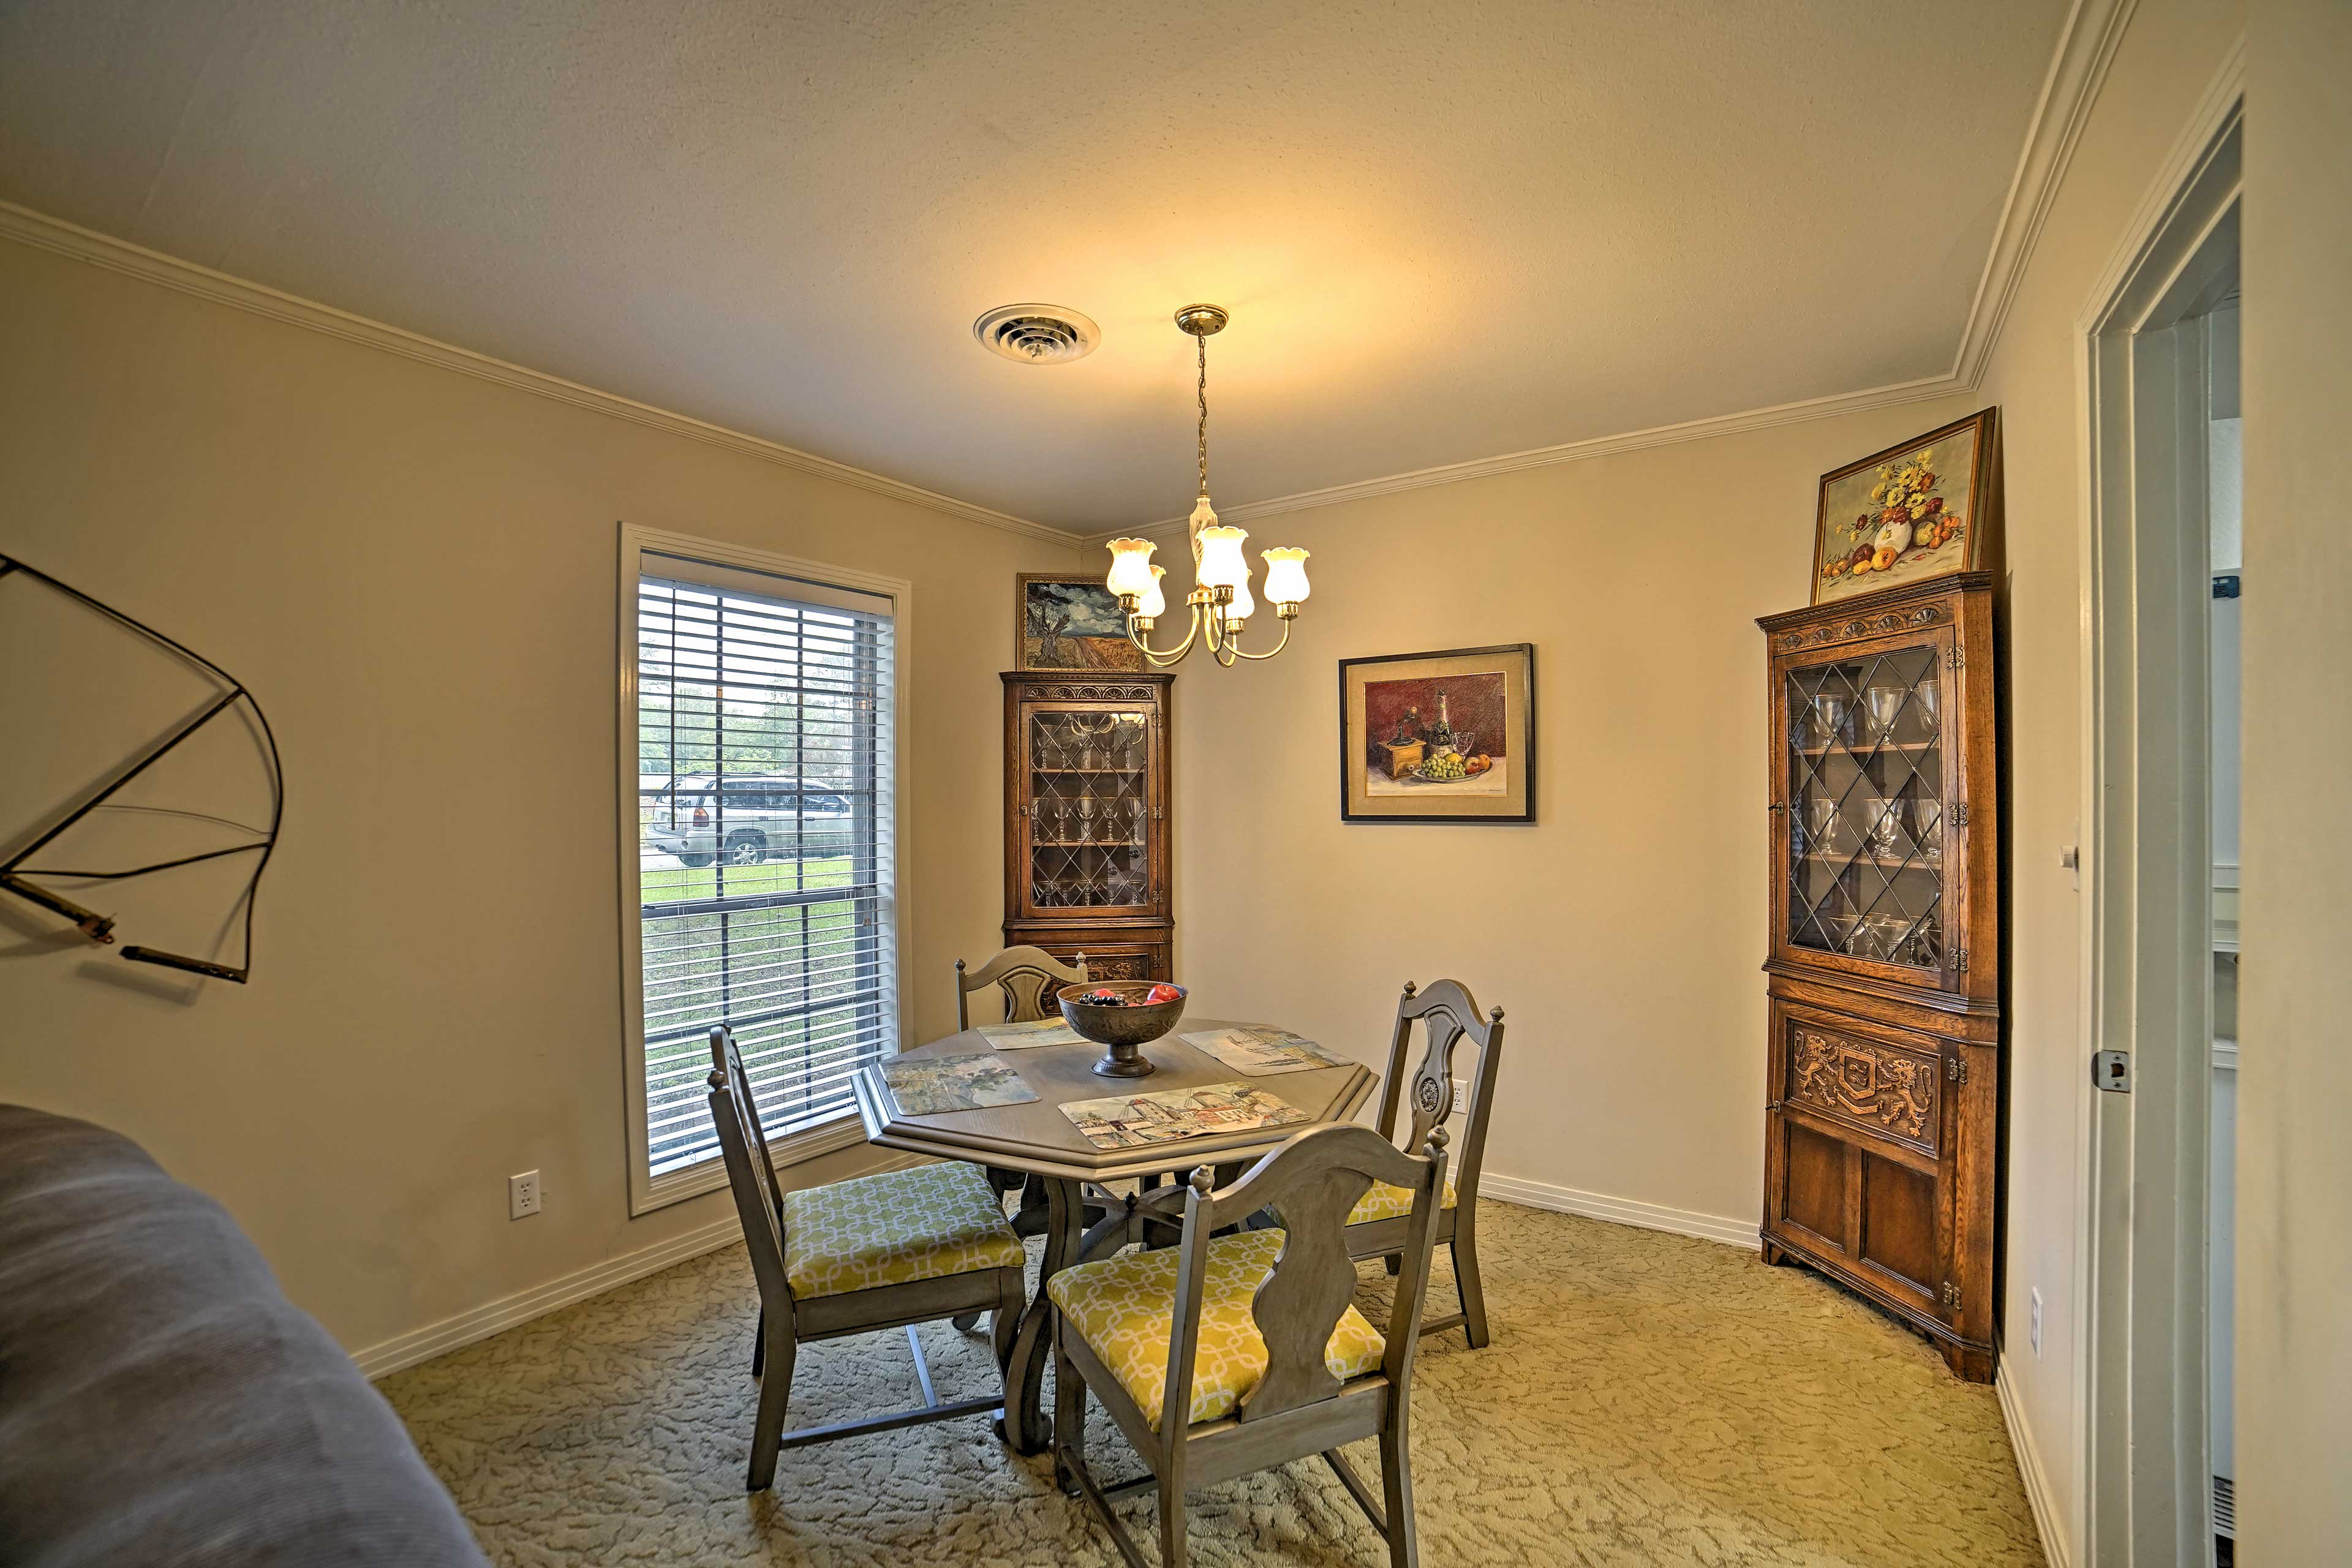 Gather around this dining table to share home-cooked meals together.